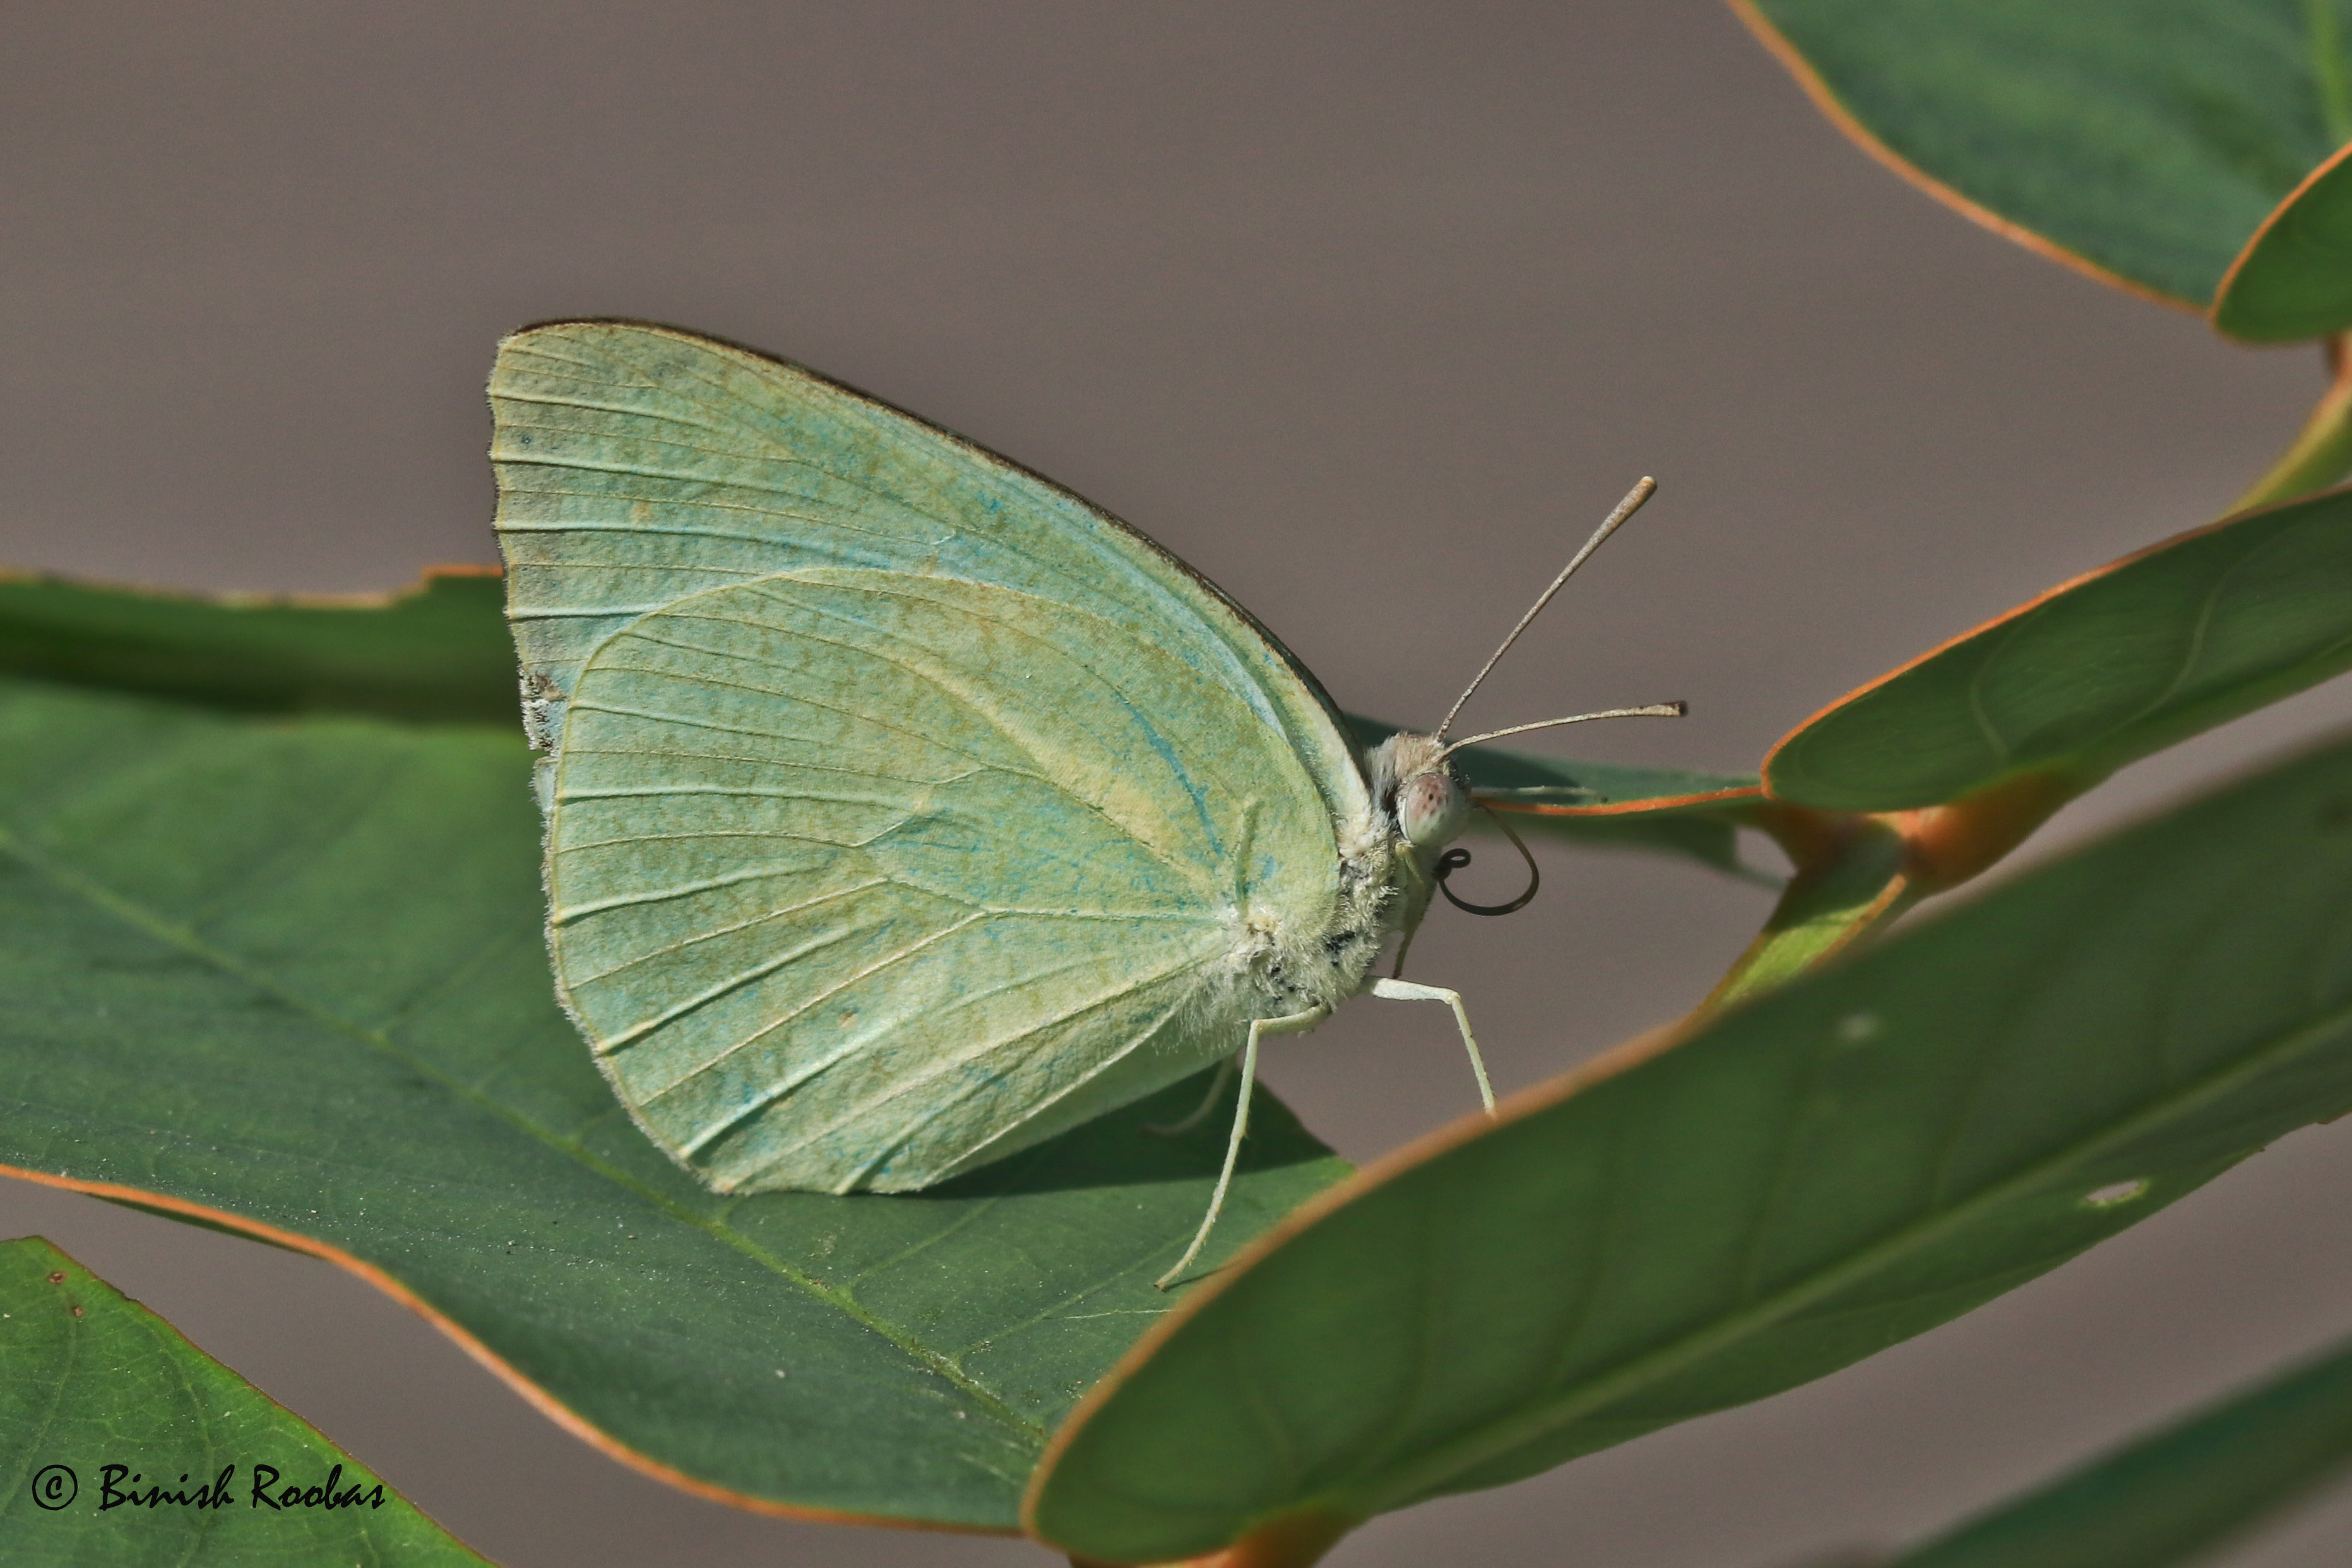 two new butterflies for the uae. pic by binish roobas